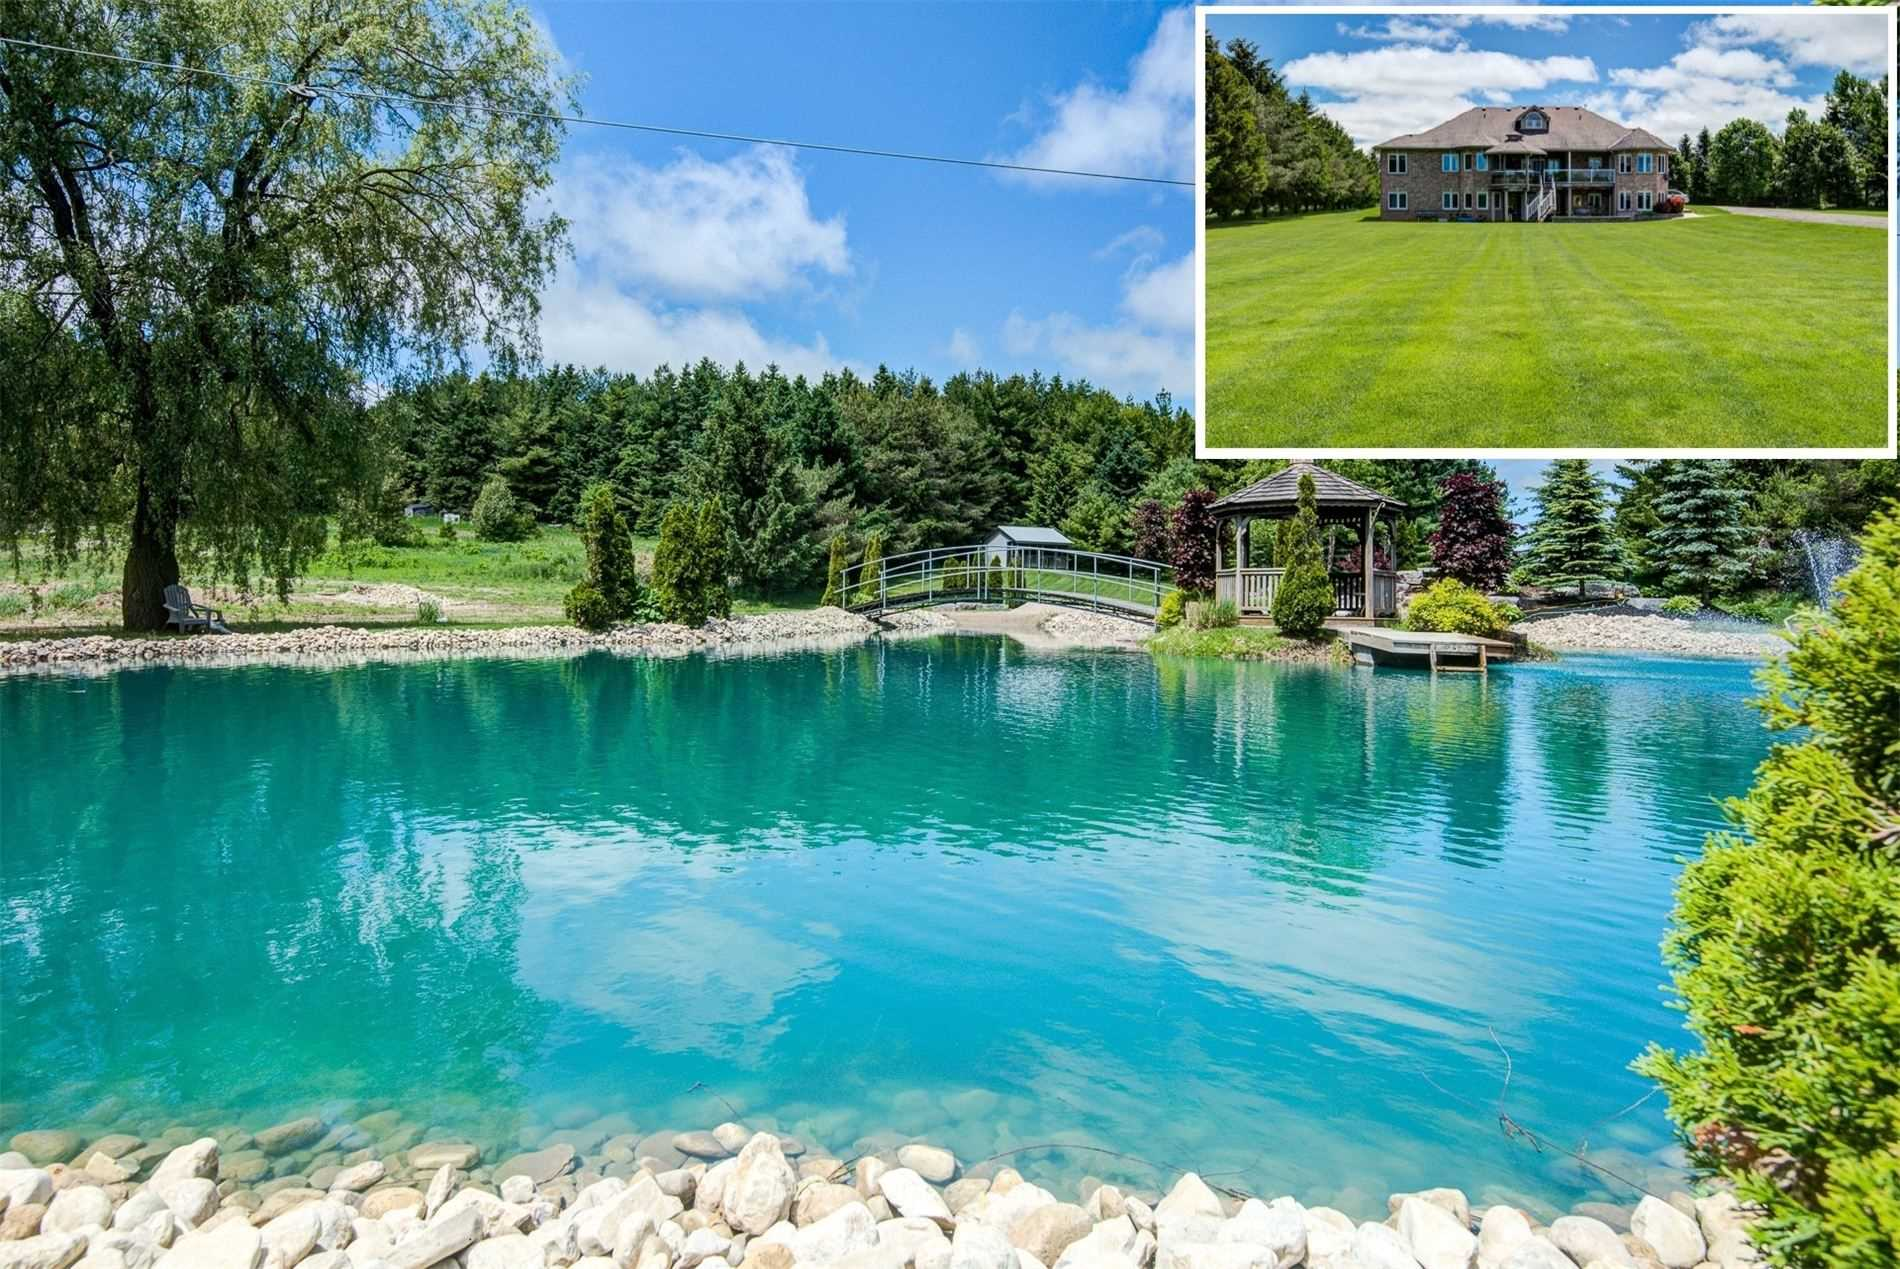 Stunning Staycation Property! Wellington Is Close Enough To The City But In Beautiful Isolation. Kick Start Your Summer In The 17Ft Deep Swimming Pond. Relax In The Sand On The Ponds Beach Overlooking The Waterfall. You Can Walk And Hike Or Snowshoe The 6 Acres Of Land.Lots Of Clean Fresh Air!